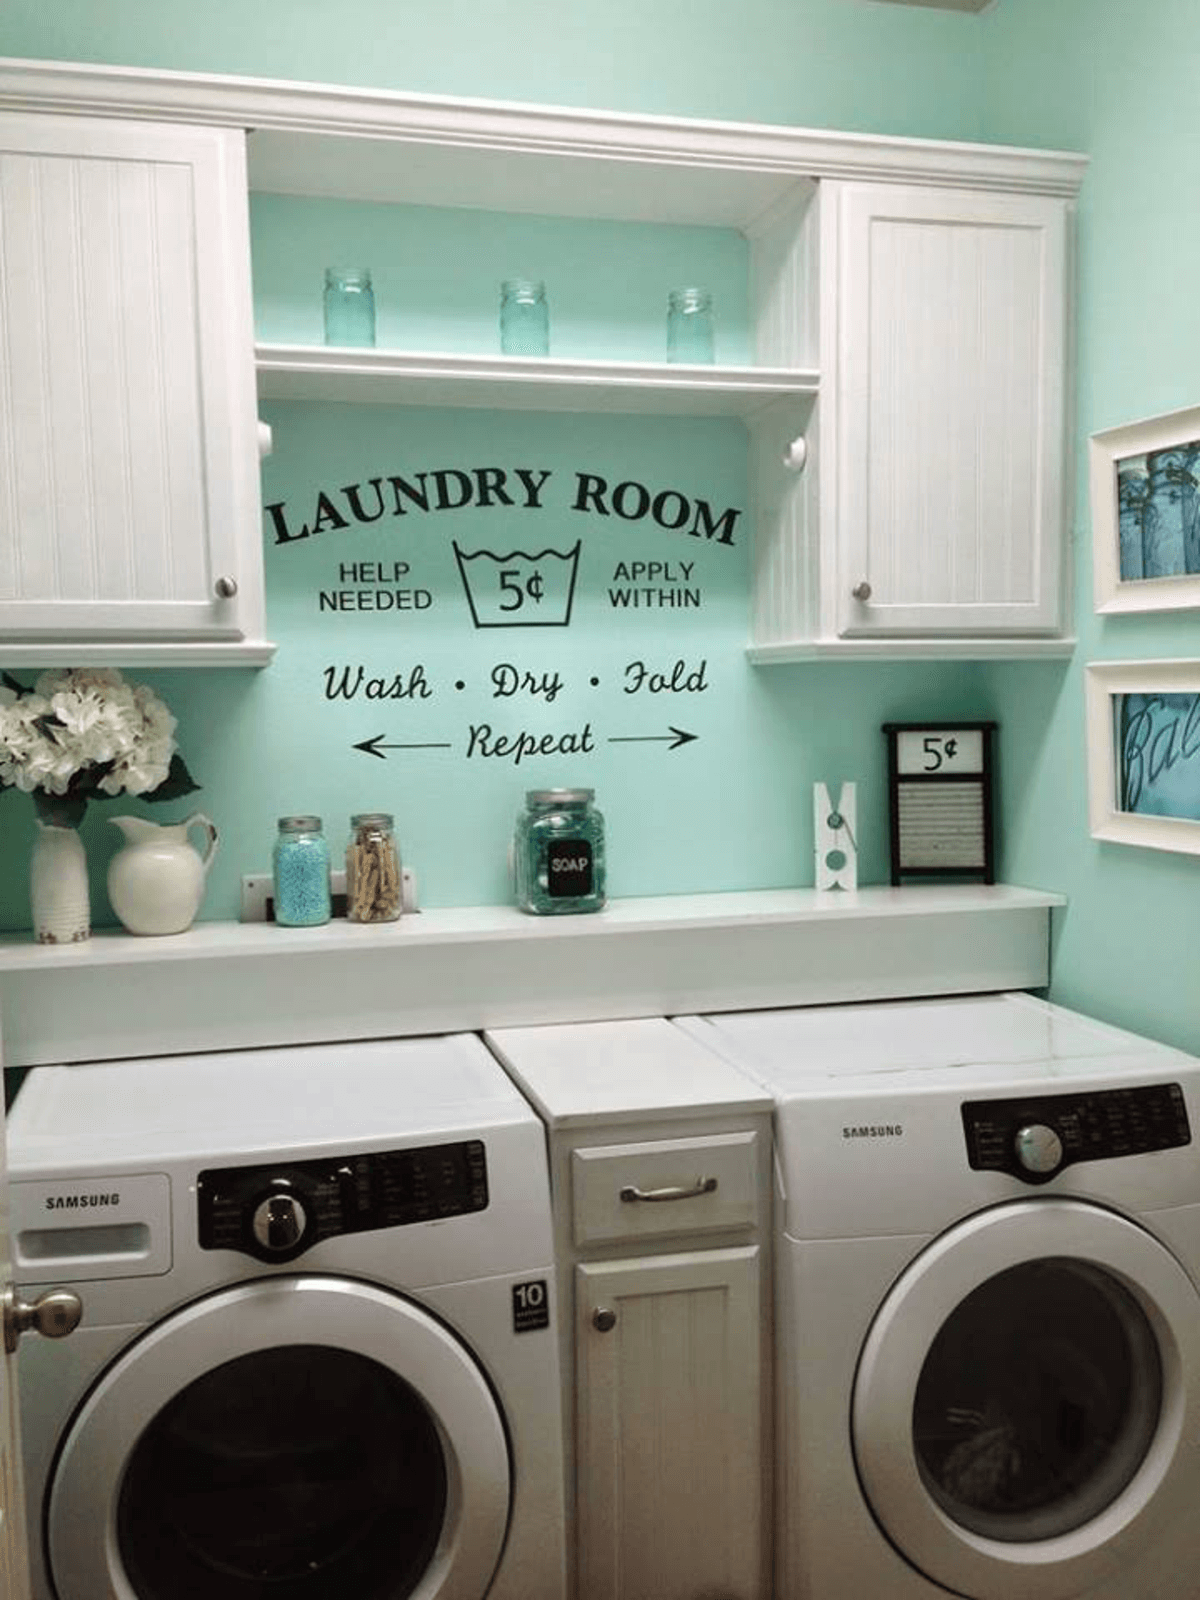 28 Beautiful And Functional Small Laundry Room Design Ideas That Will Transform Your Space